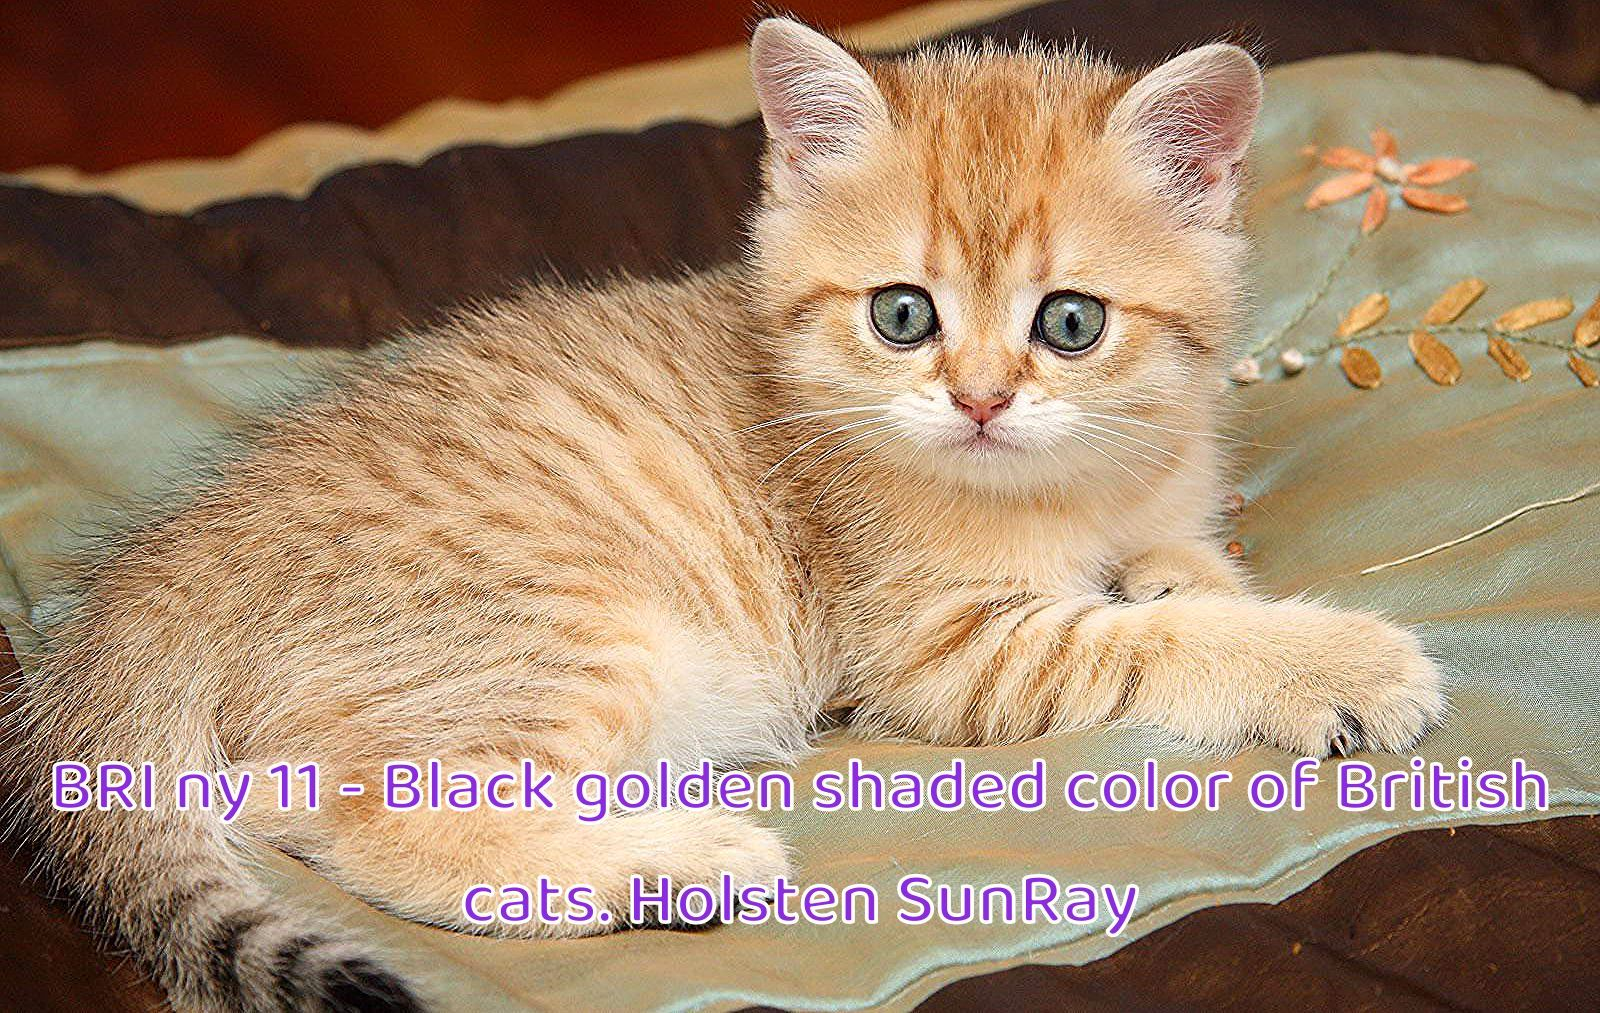 Name Holsten Sunray The Male Cat Bri Ny 11 Breed British Shorthair Color Black Golden Shaded Birthday December 15 200 In 2020 Cats British Shorthair Red Cat